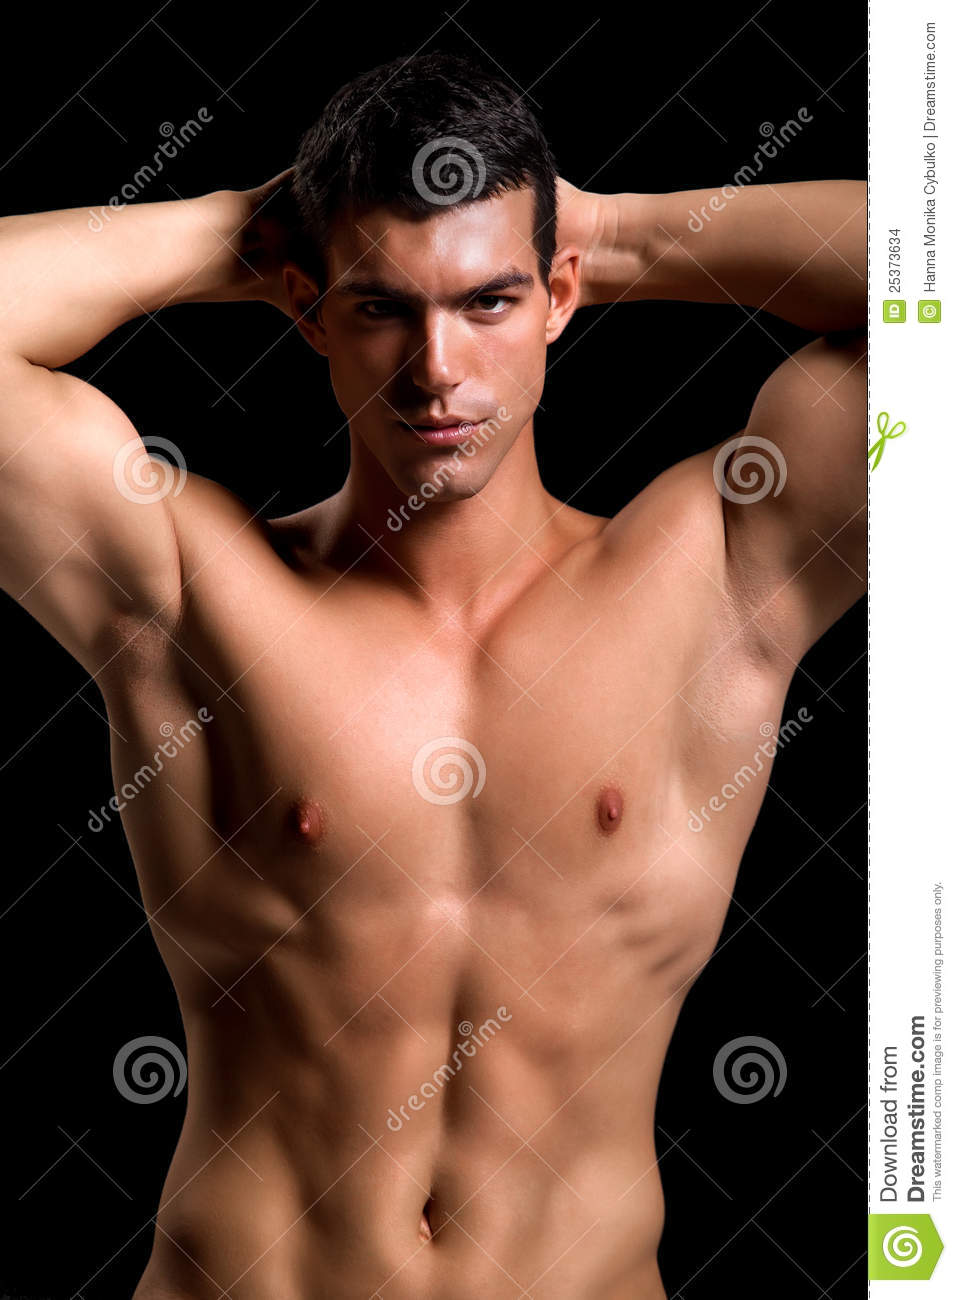 Healthy Muscular Young Man Stock Photo Image Of Beautiful - 25373634-2617